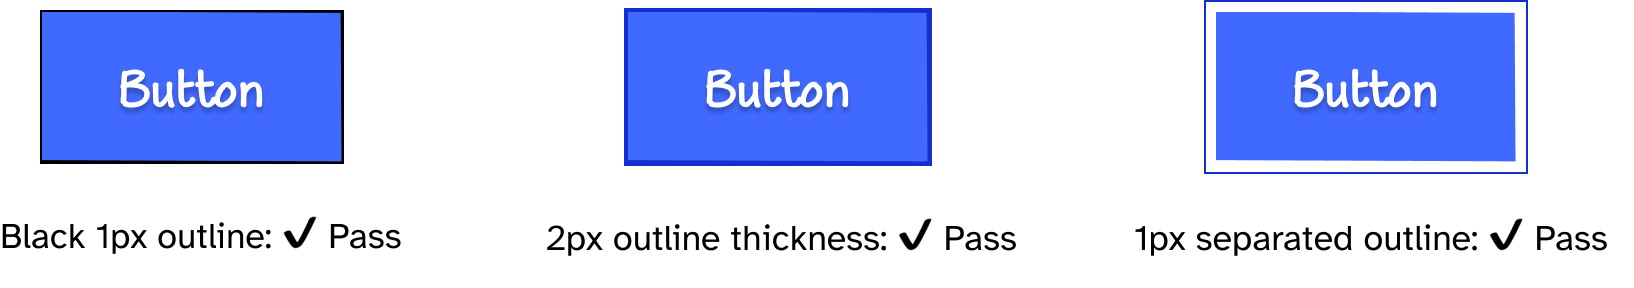 On the left is the blue button with a black 1px solid outline, and text that says 'Pass' underneath it. In the middle, is the blue button with a 2px thick dark blue outline, and text that says 'Pass'. On the right is the blue button with a 1px dark blue outline separated from the button's edges, and text that says 'Pass'.